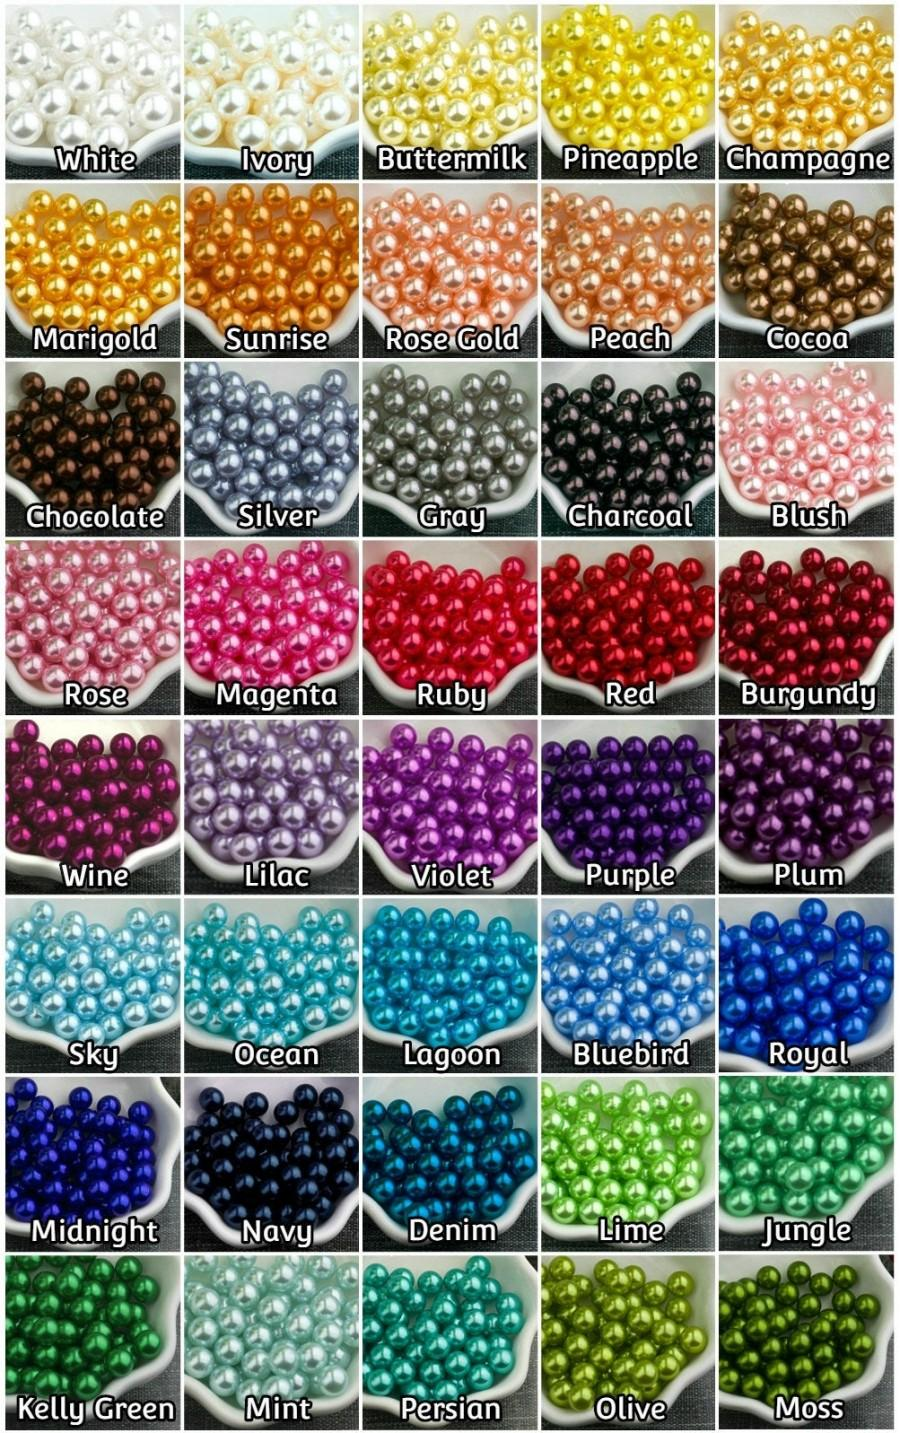 Wedding - 40+ Color Pearls - 8 Size Available - No Hole Pearls - Jumbo Pearls, Vase Fillers Pearls, Floating Pearls Centerpiece, Table Decor